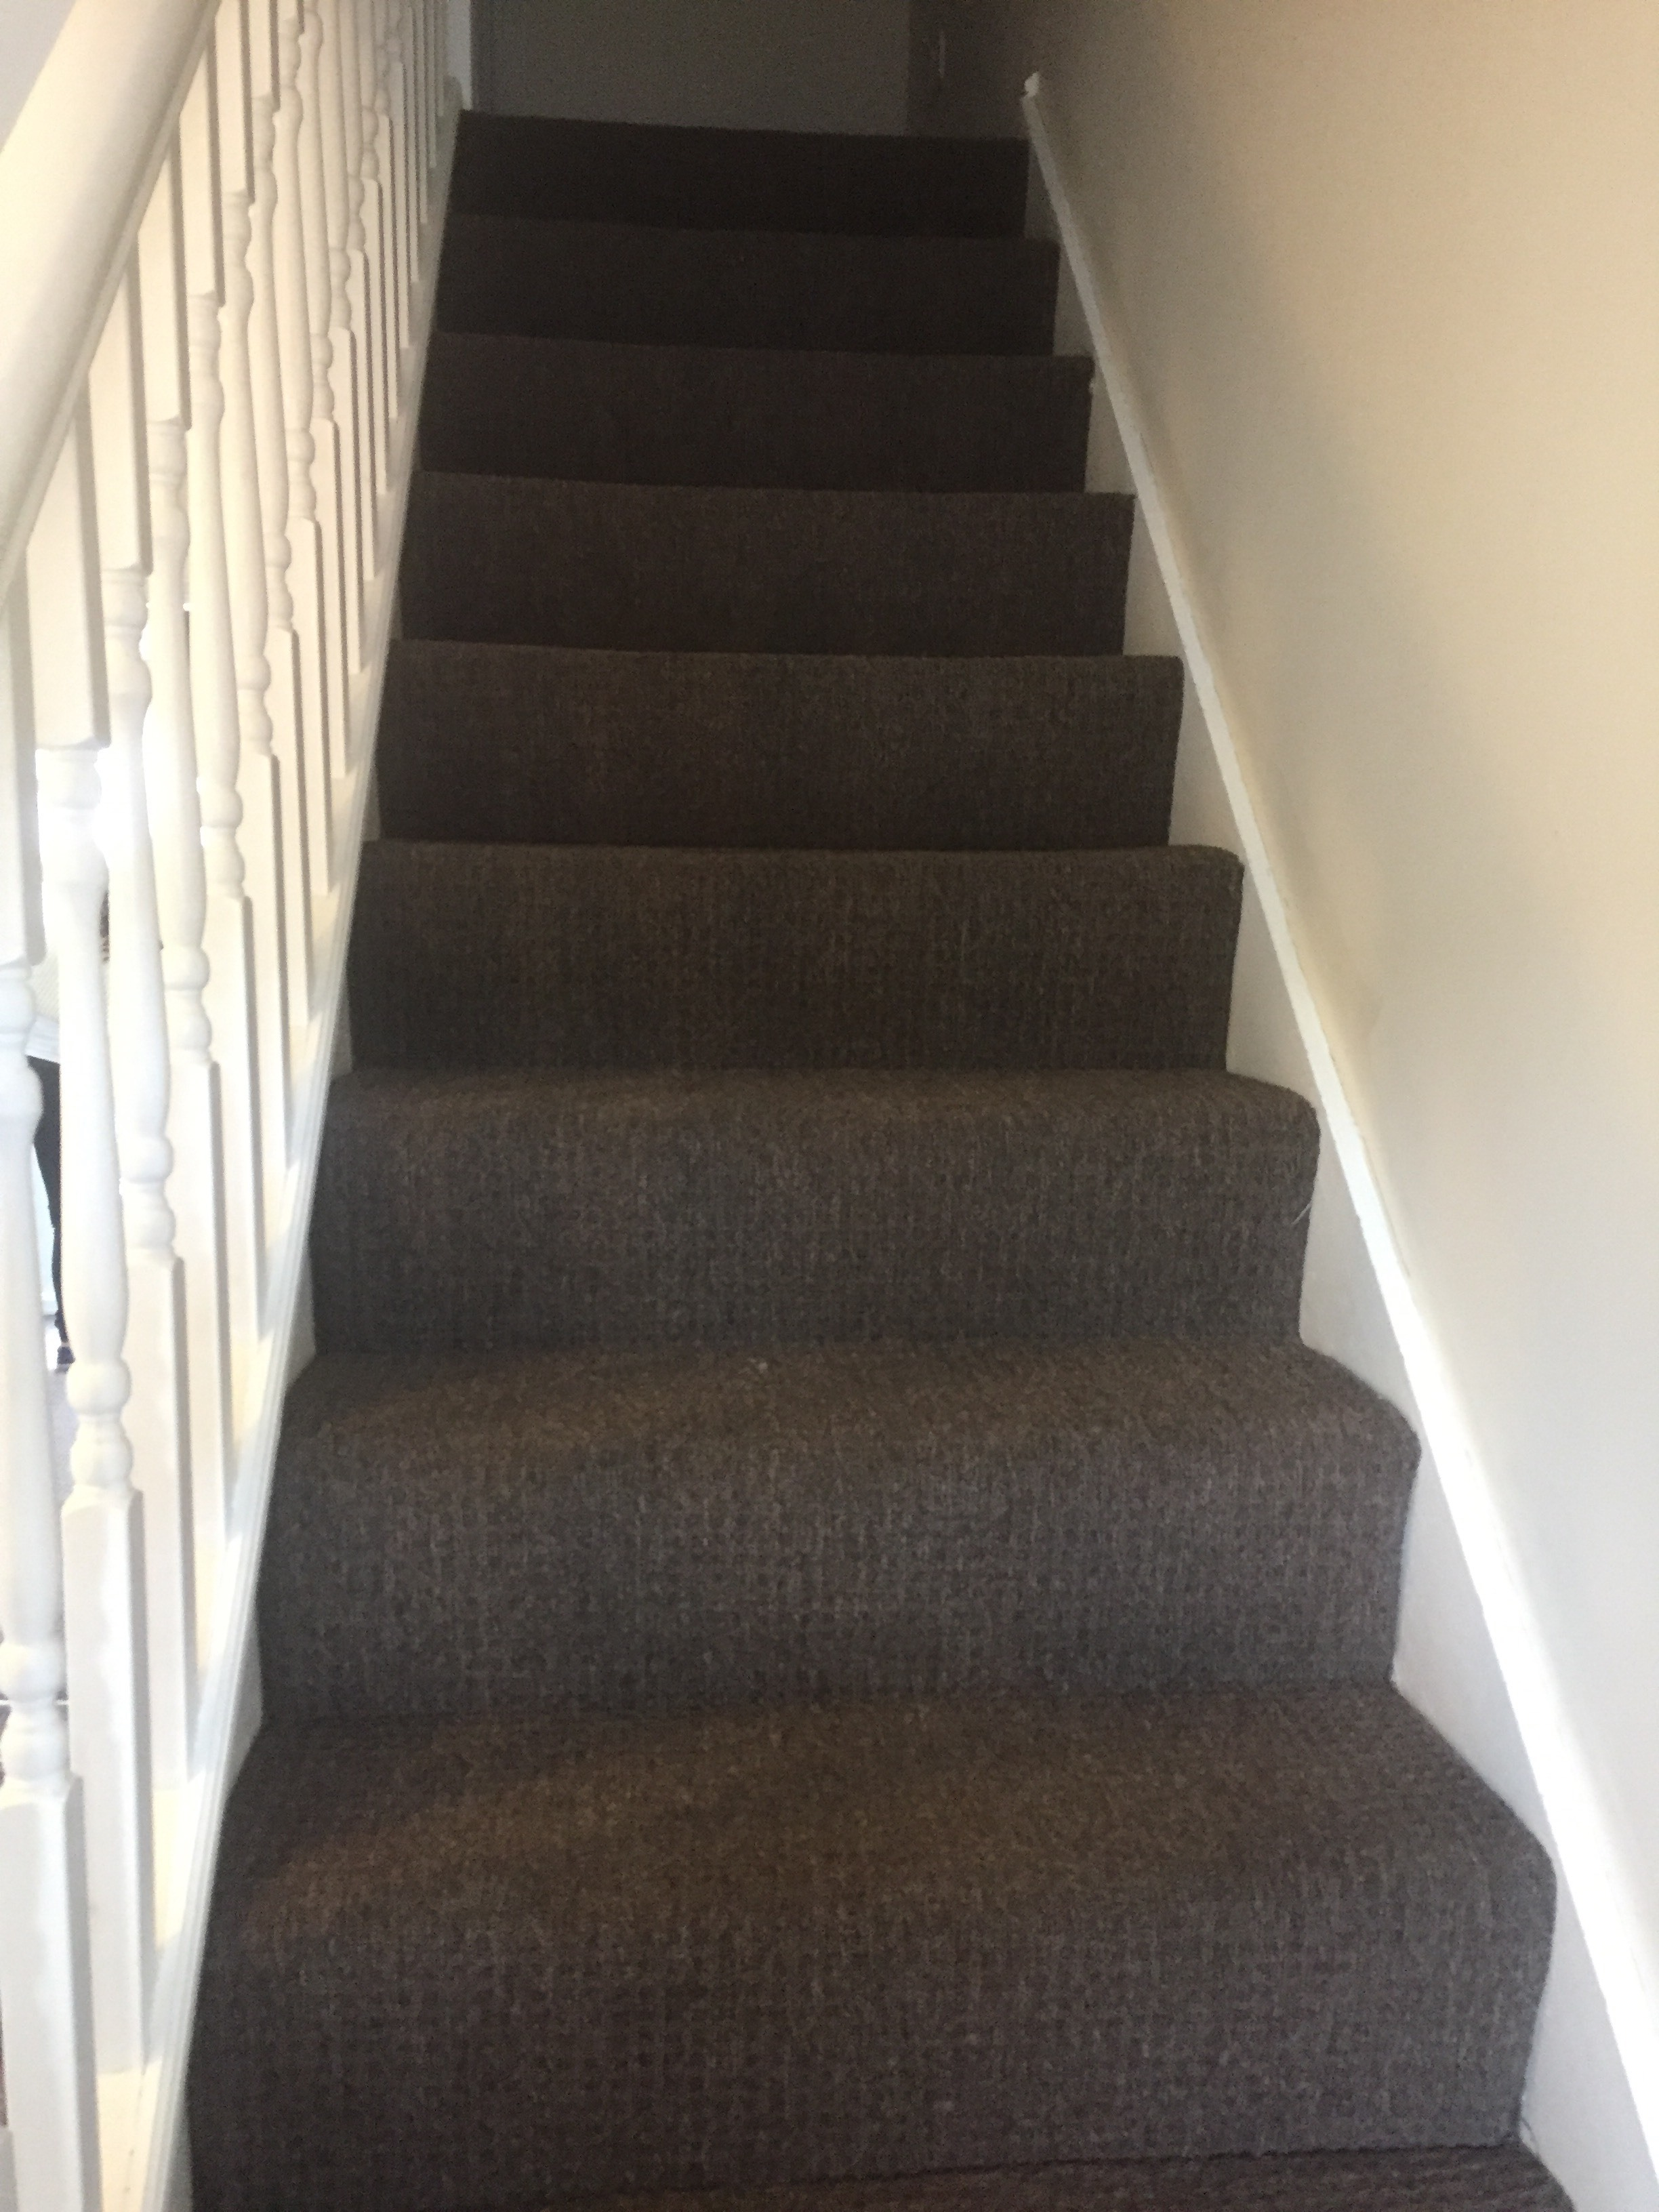 finished stairs 2.jpg